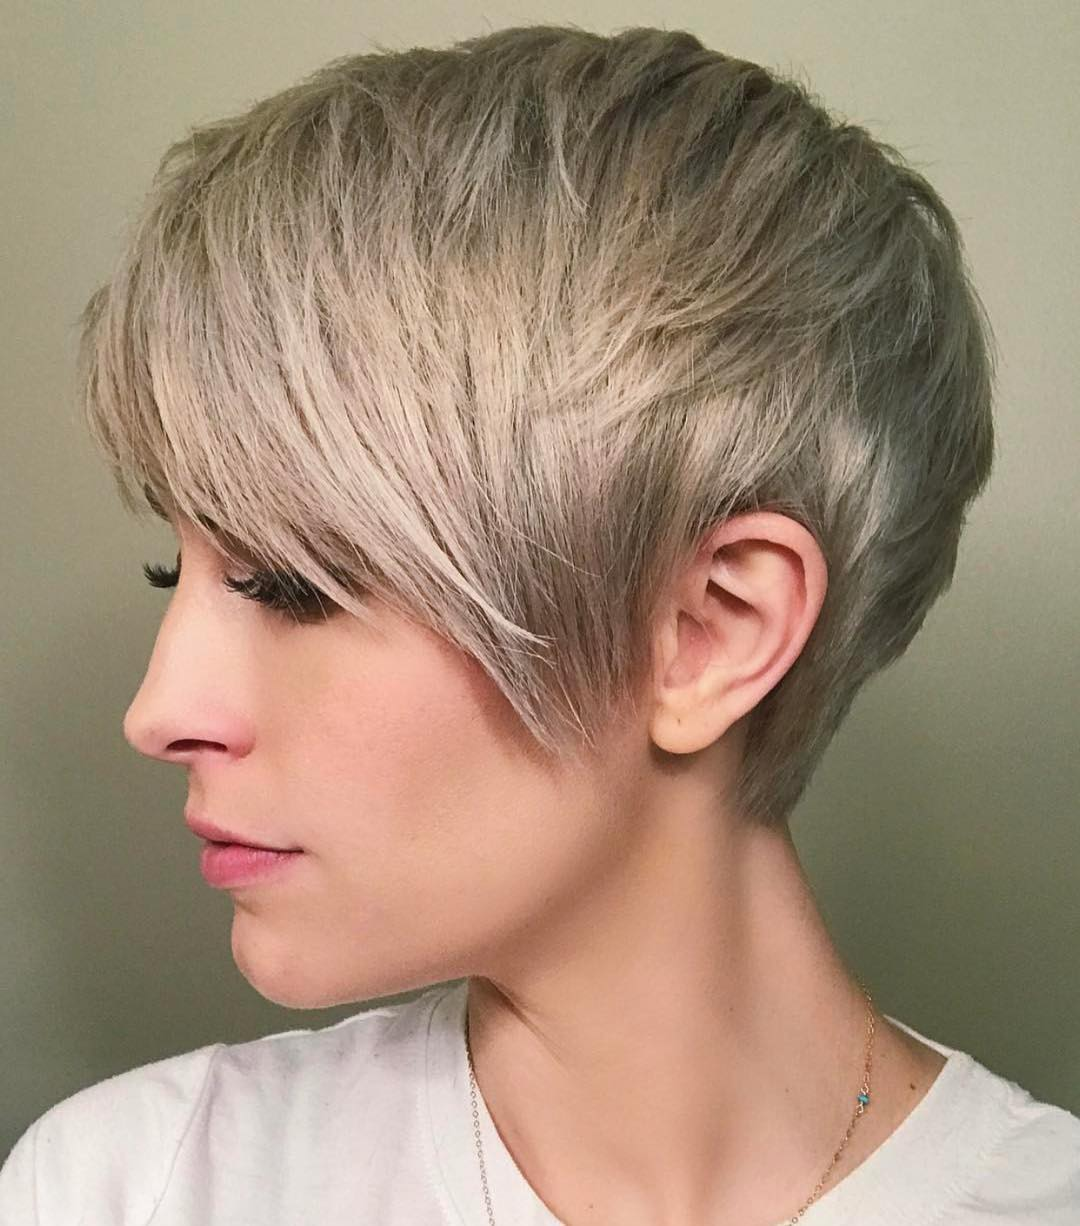 10 best short straight hairstyle trends - women short haircut ideas 2018